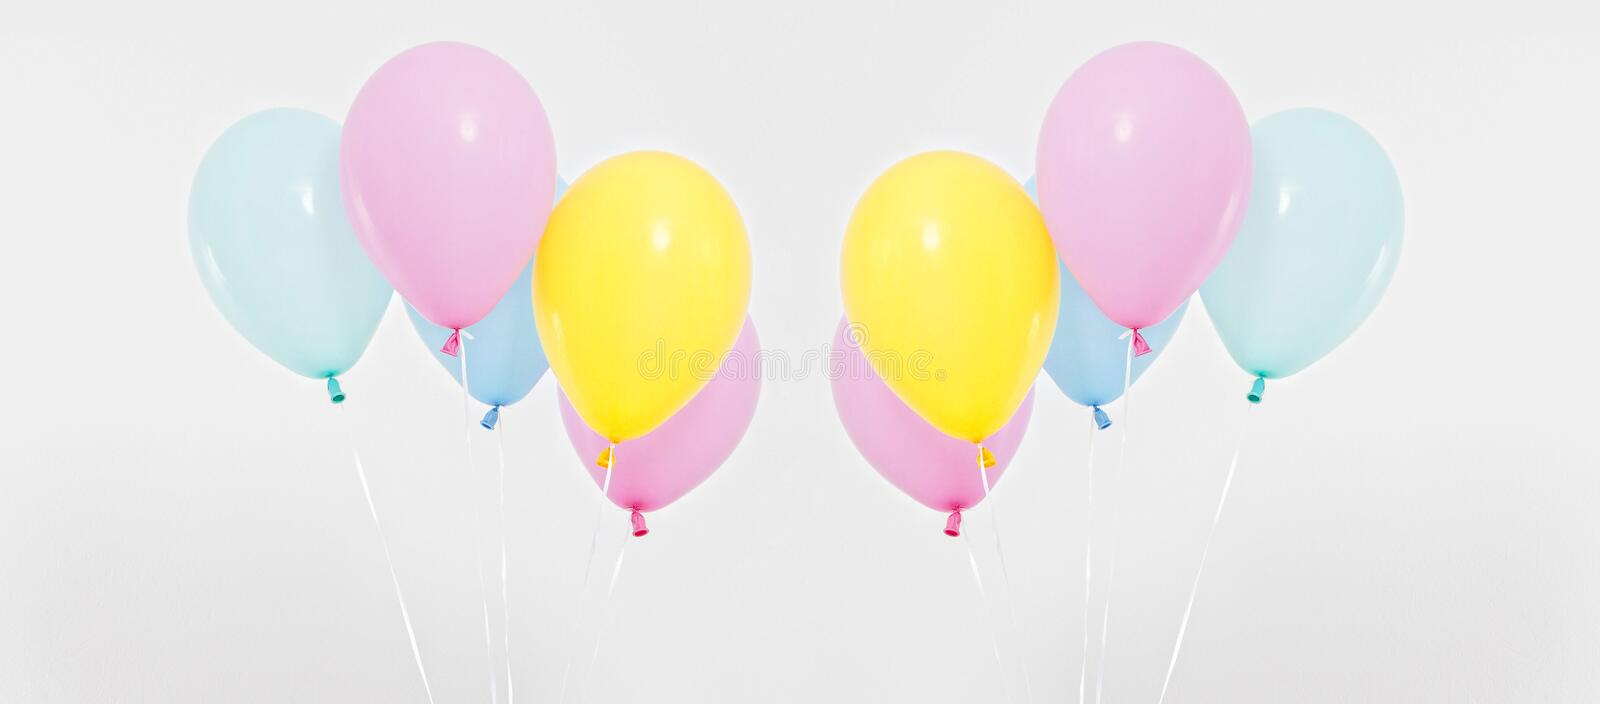 Colorful party balloons background collage, set. Celebration, holidays, summer concept. Design template. billboard or banner blank stock images